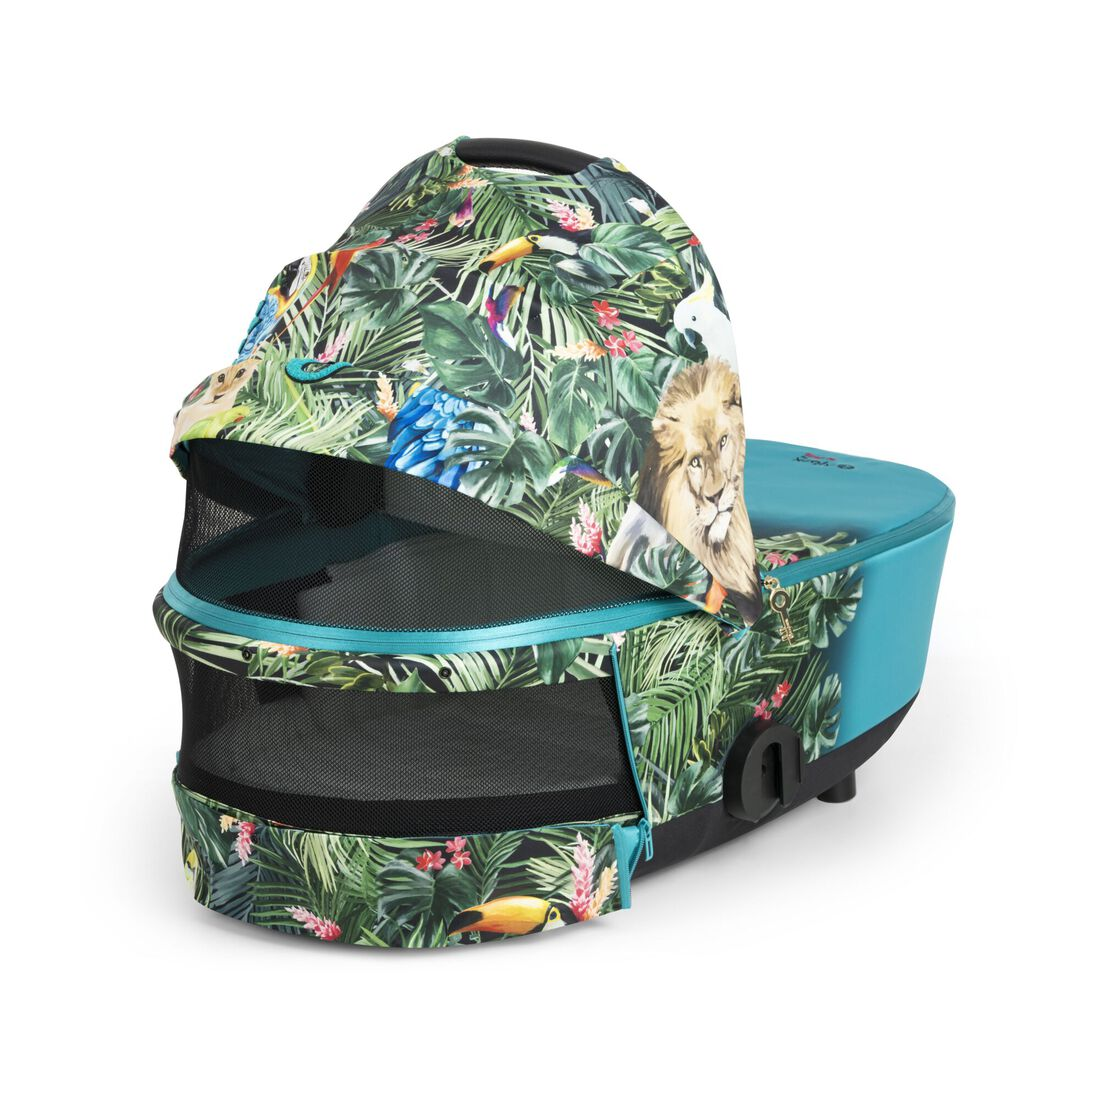 CYBEX Mios Lux Carry Cot - We The Best in We The Best large image number 3